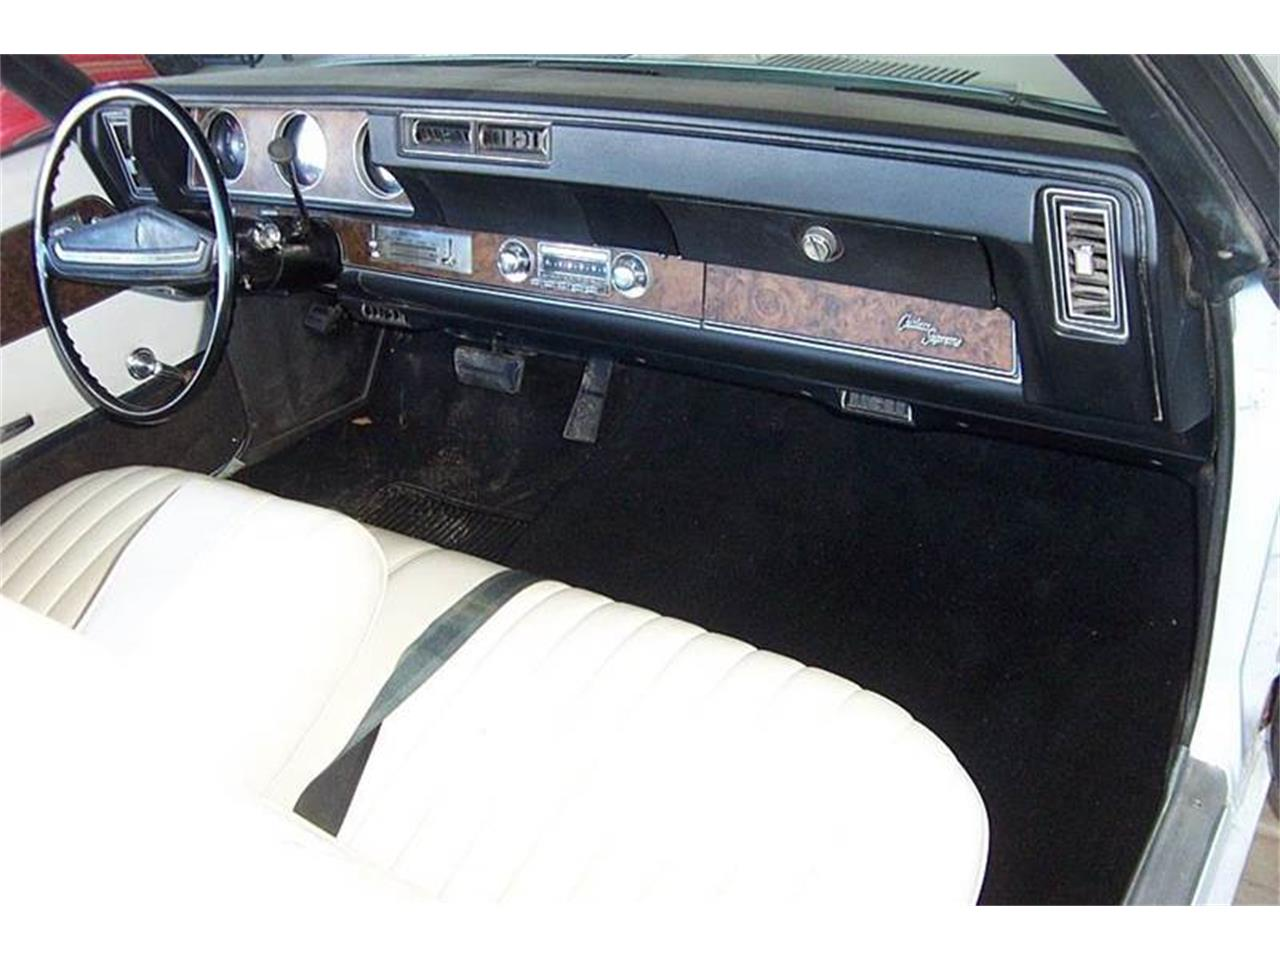 Large Picture of 1970 Cutlass Supreme - $19,900.00 Offered by Good Time Classics - OY7X